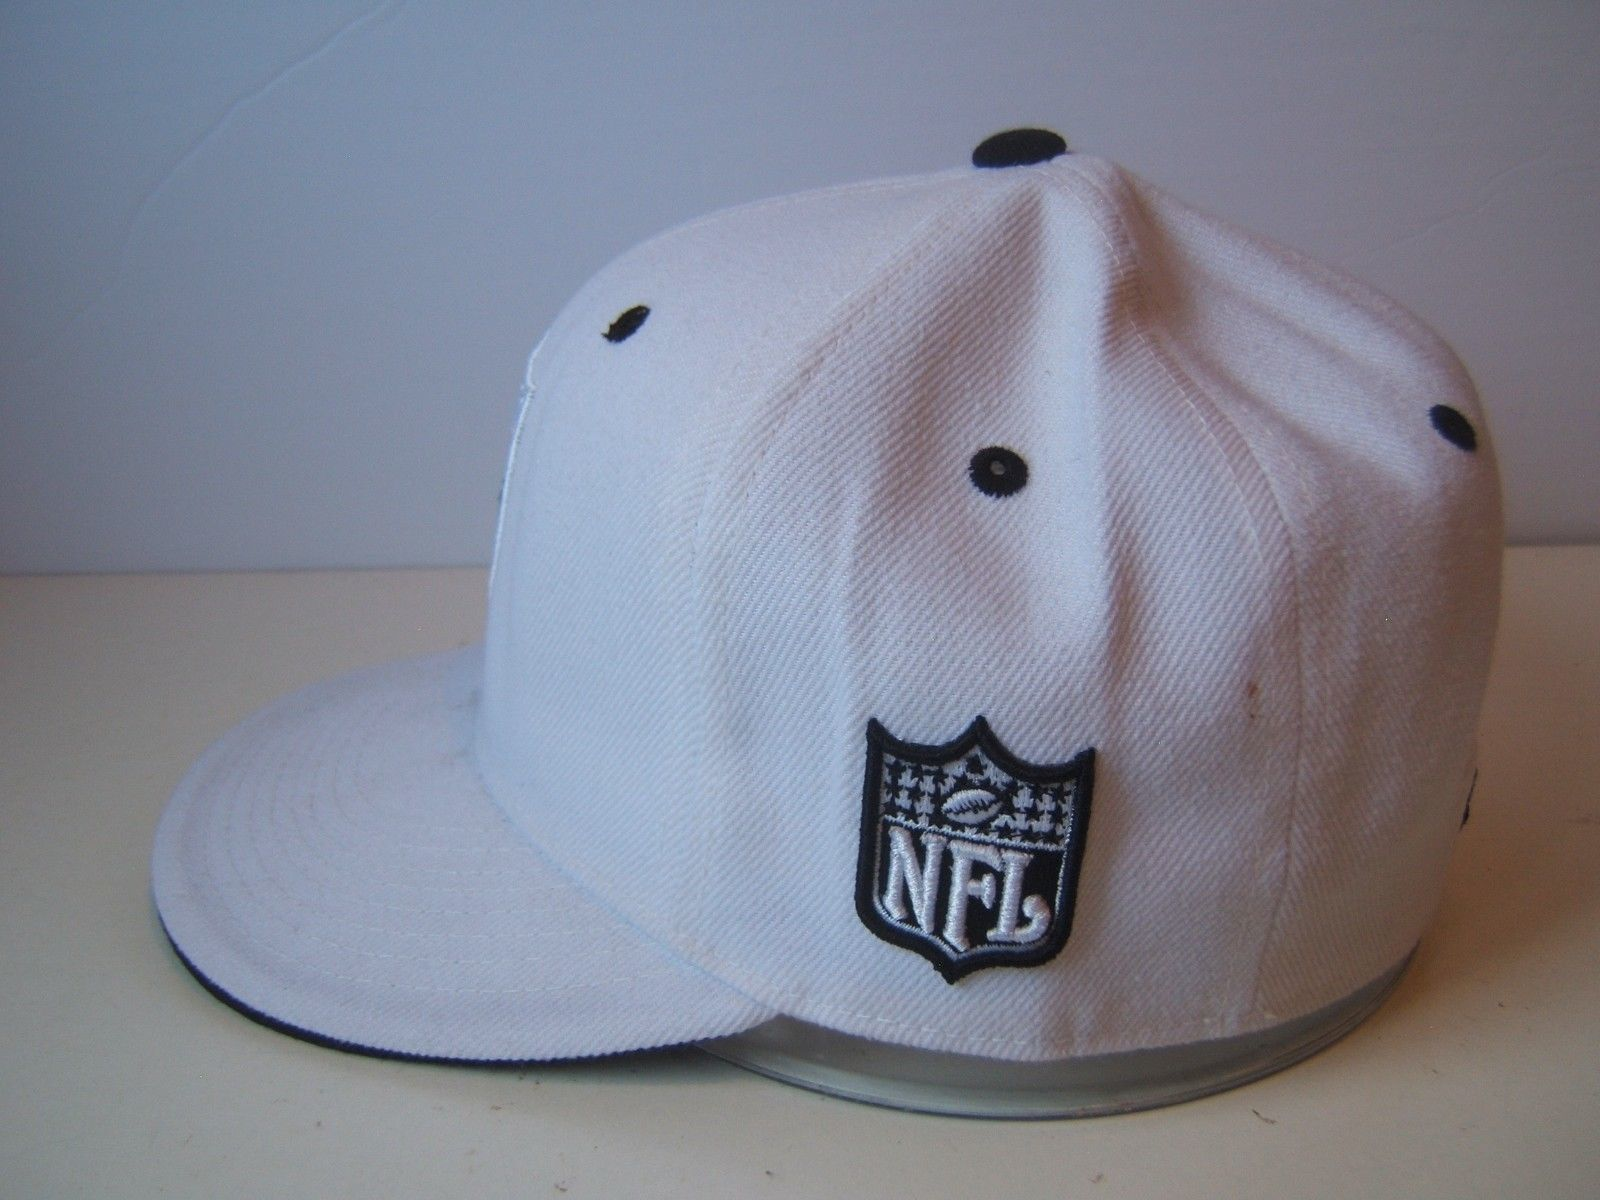 Raiders Patch Hat 7 1 4 Fitted Black White NFL Football Reebok Baseball Cap c79c30bae6de